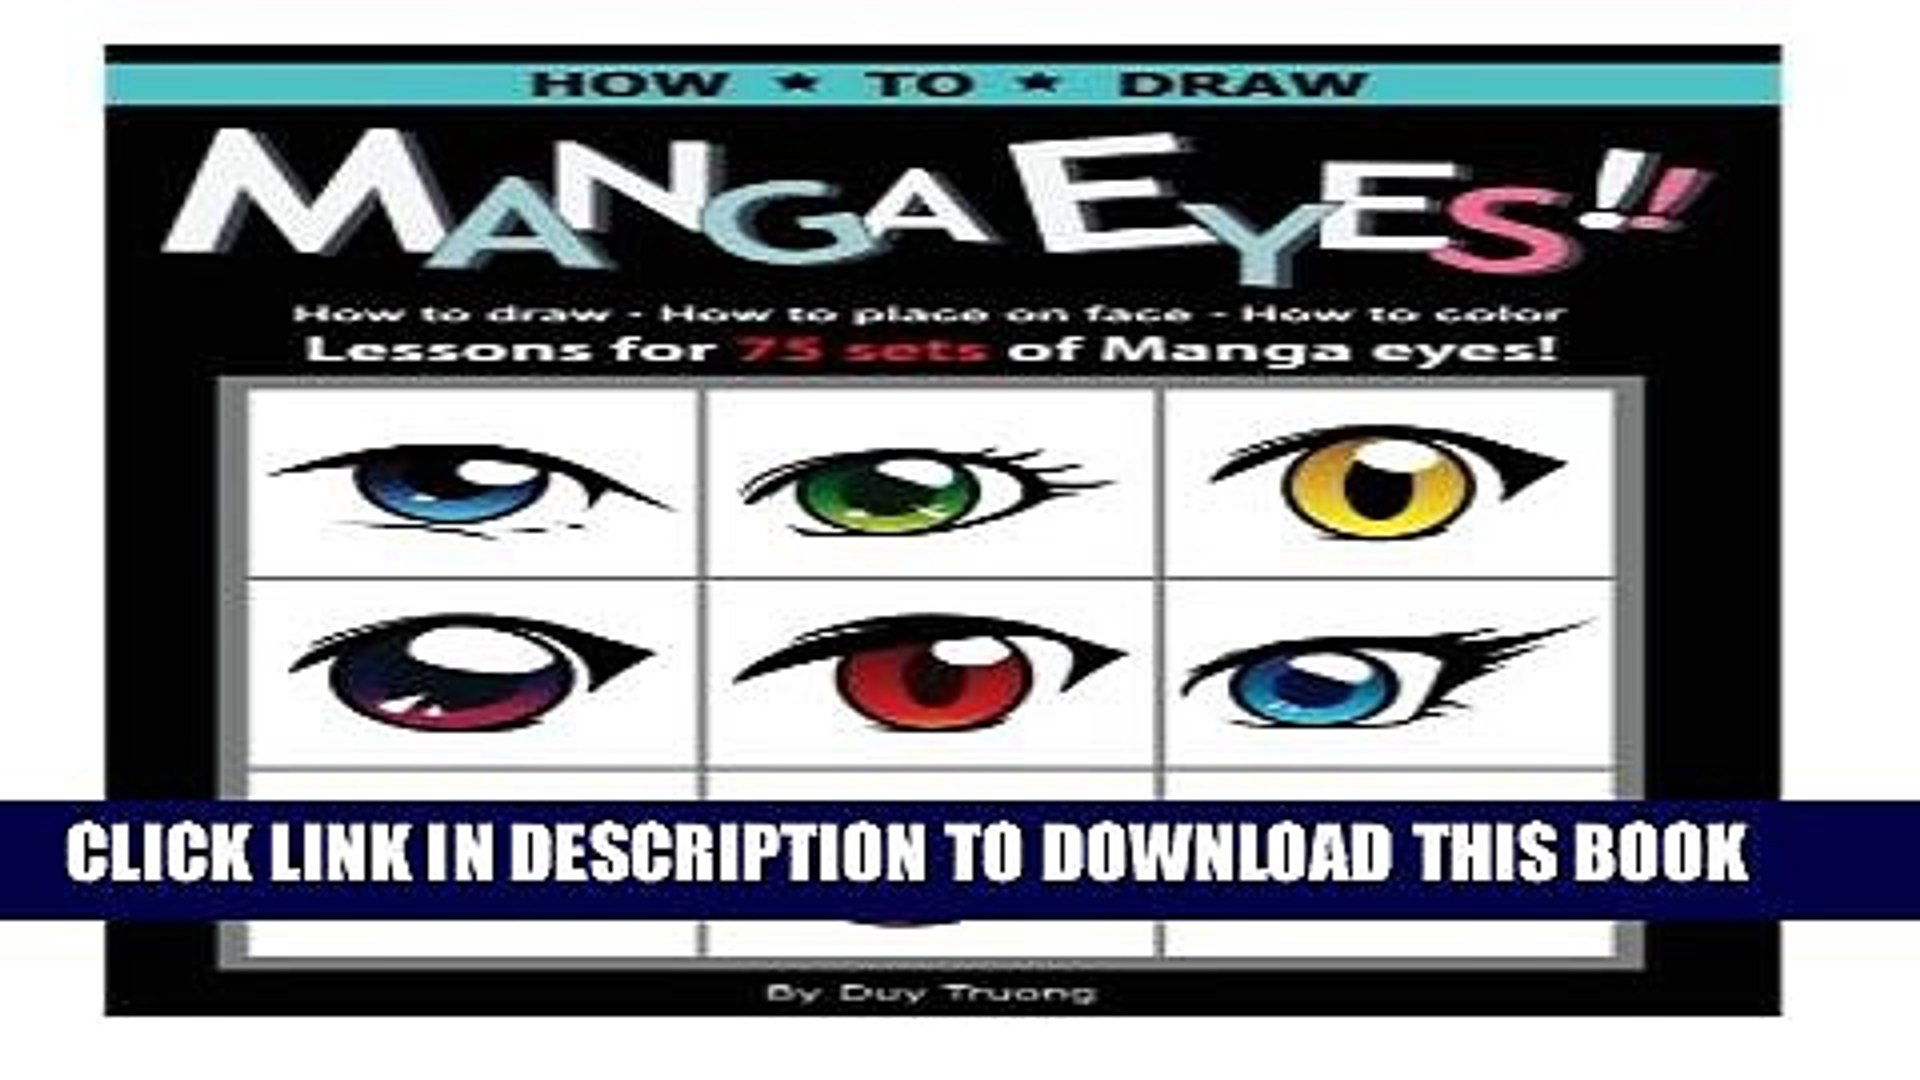 [PDF] How to draw Manga eyes!! How to Draw- How to Place on Face-How to Color Lessons for 75 Sets